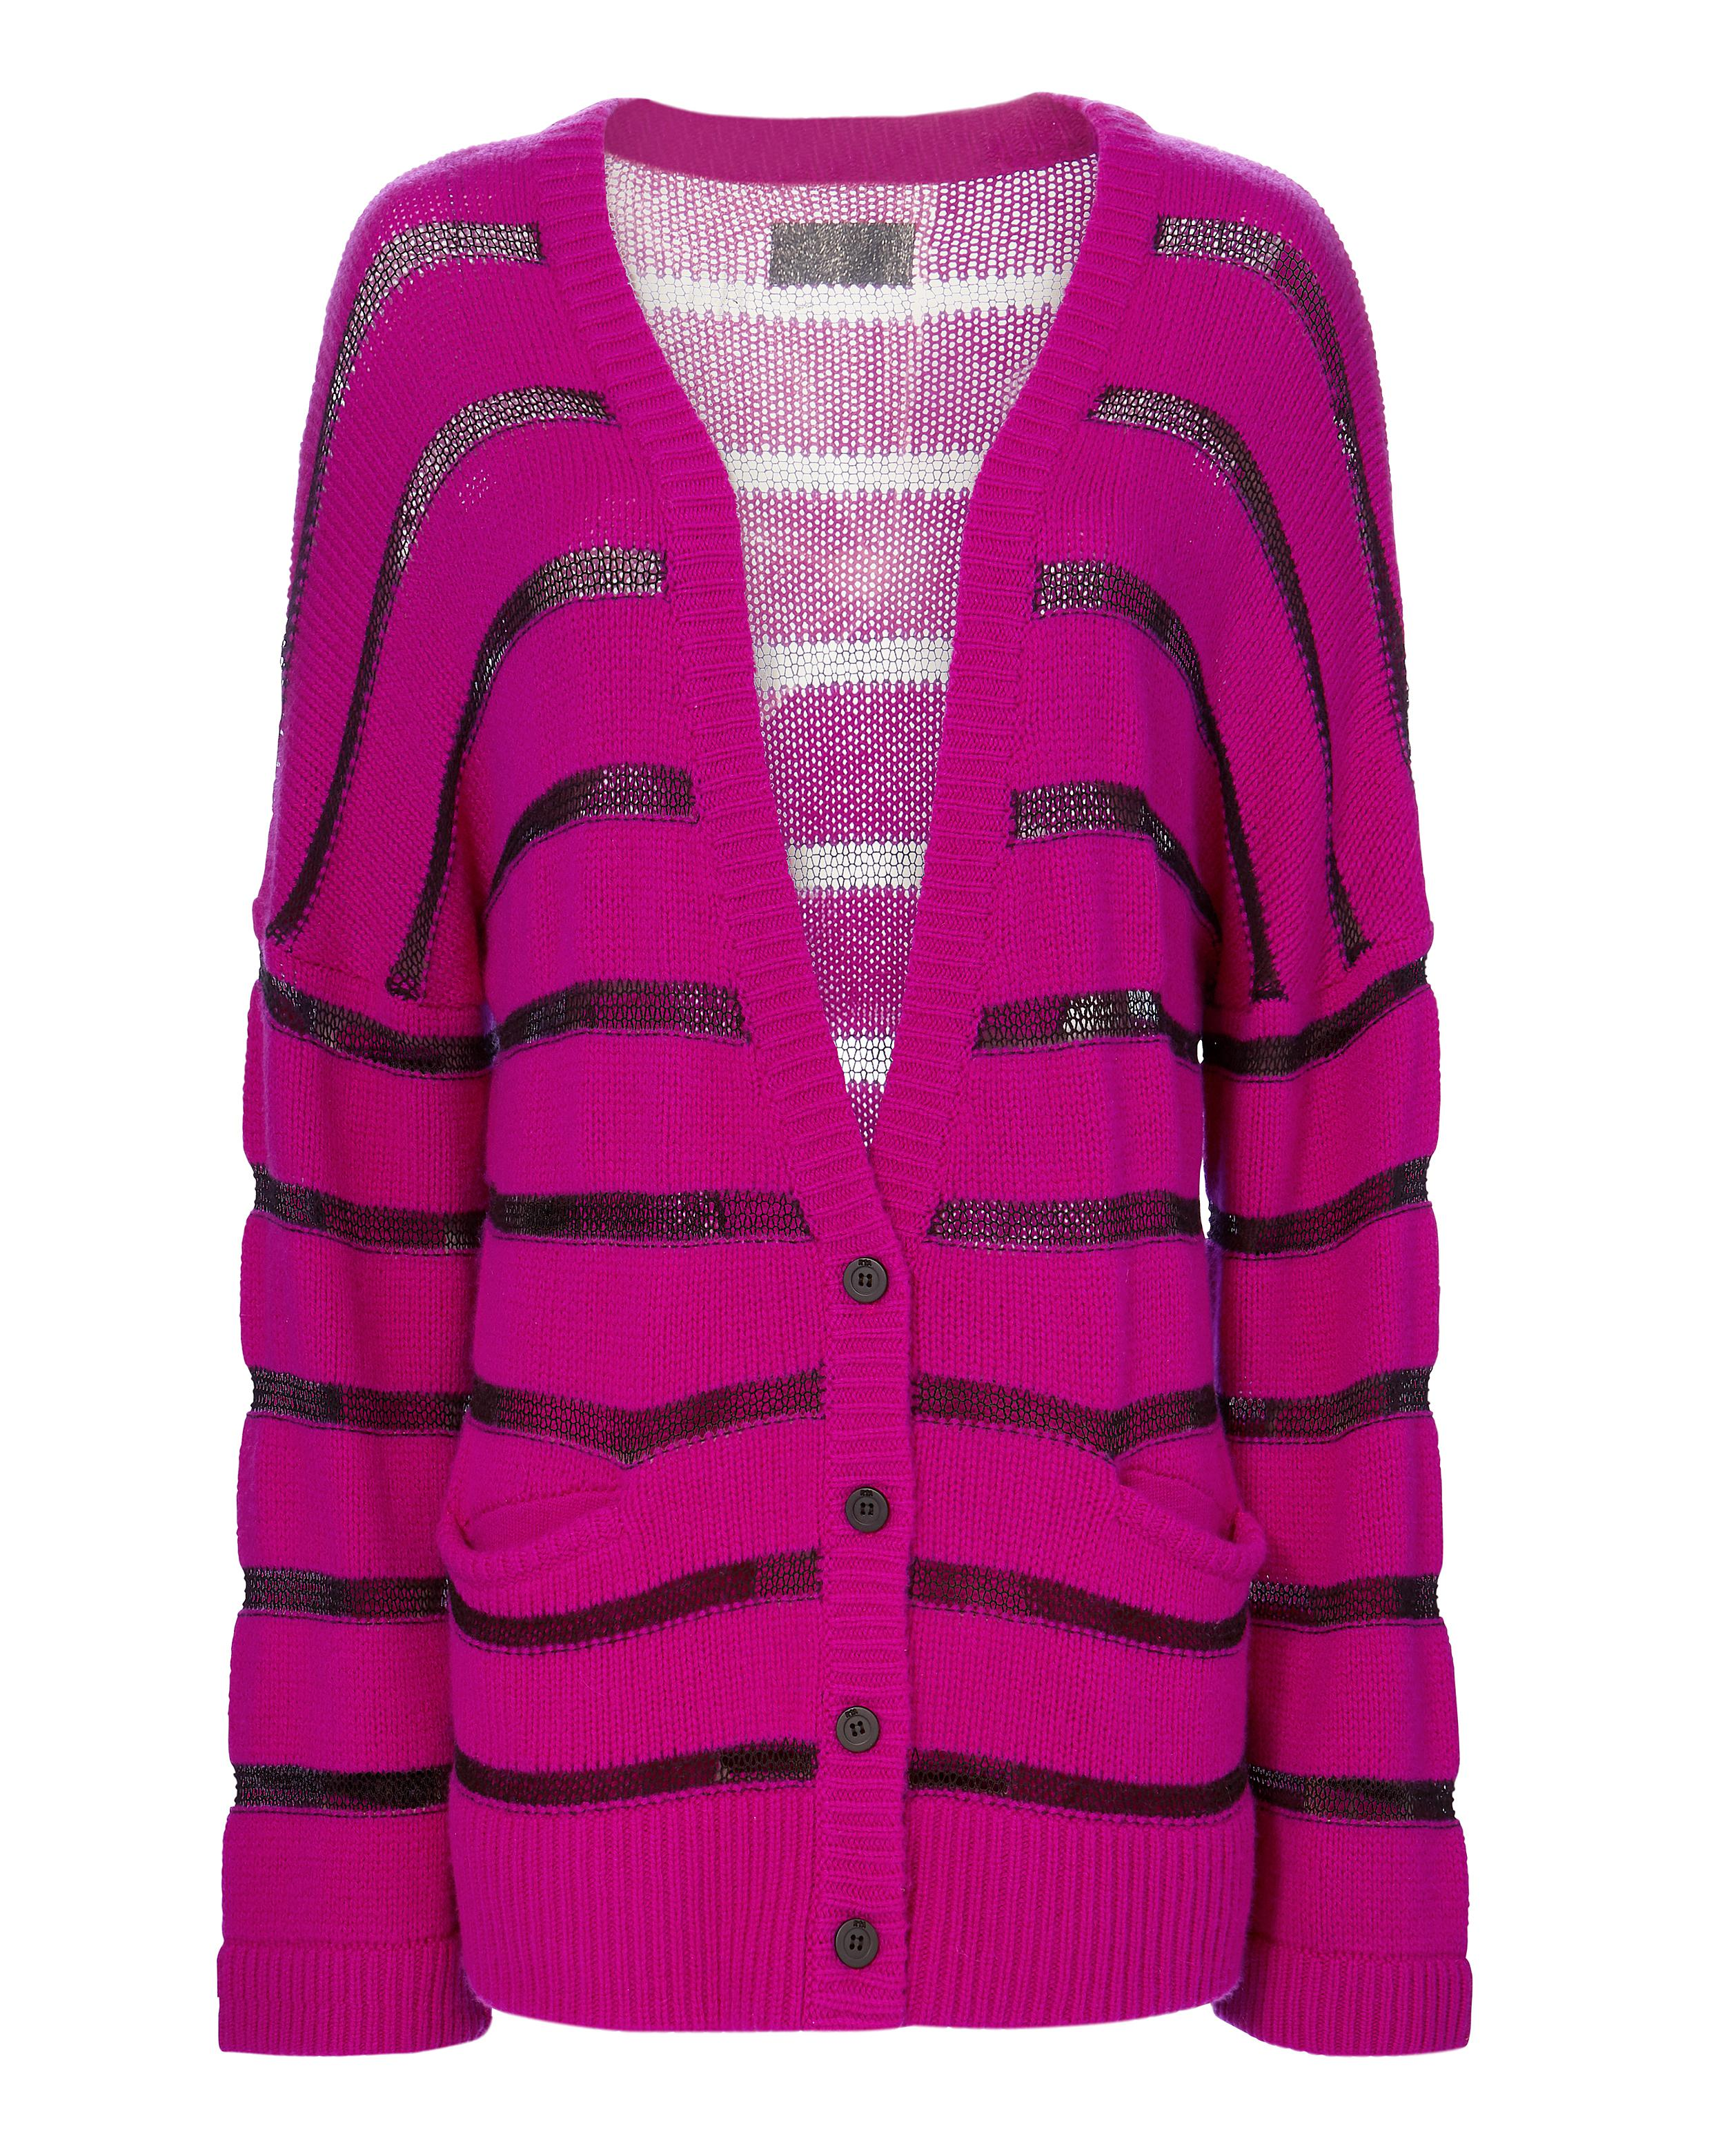 Outlet Footlocker striped knitted cardigan - Pink & Purple Rta Good Selling Cheap Purchase Discount Cheap F8CcW7vE